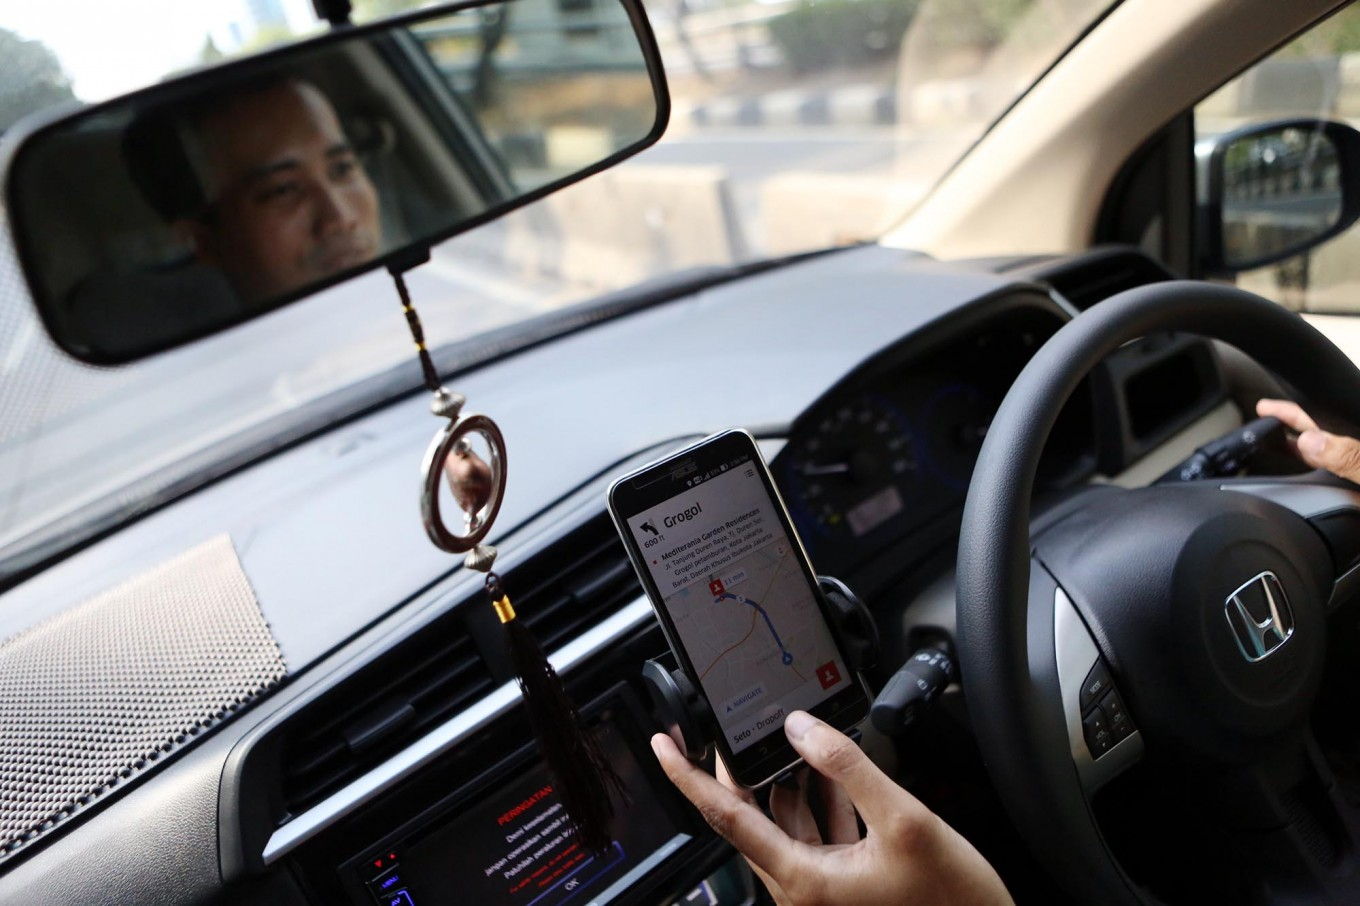 Ministry told to equip ride-hailing vehicles with monitoring devices